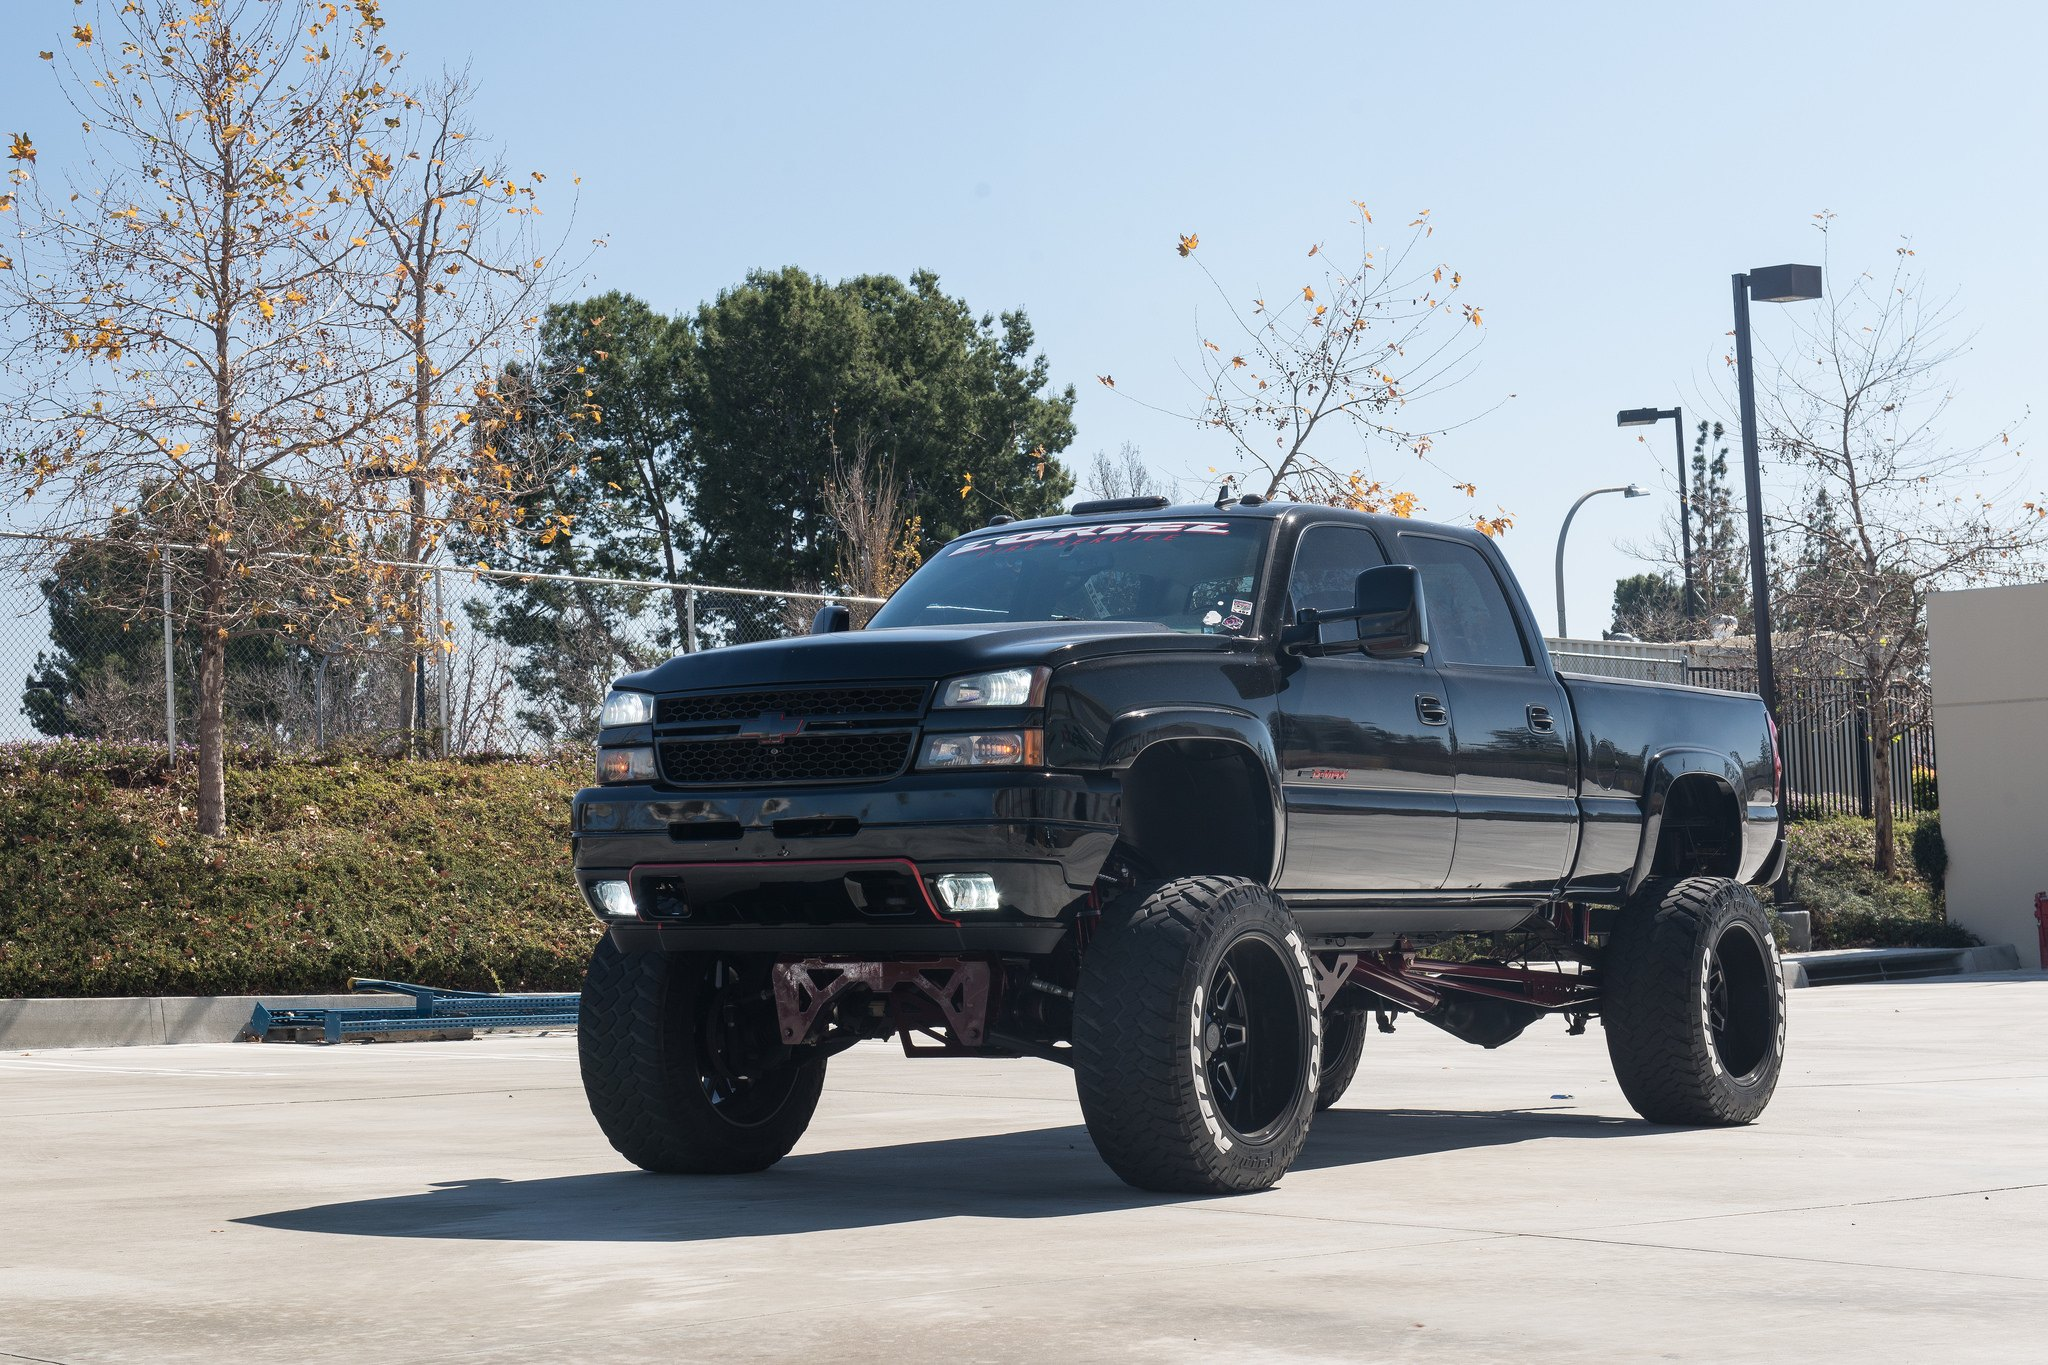 Lifted Chevy Trucks >> King Lift On Custom Black Chevy Silverado Carid Com Gallery